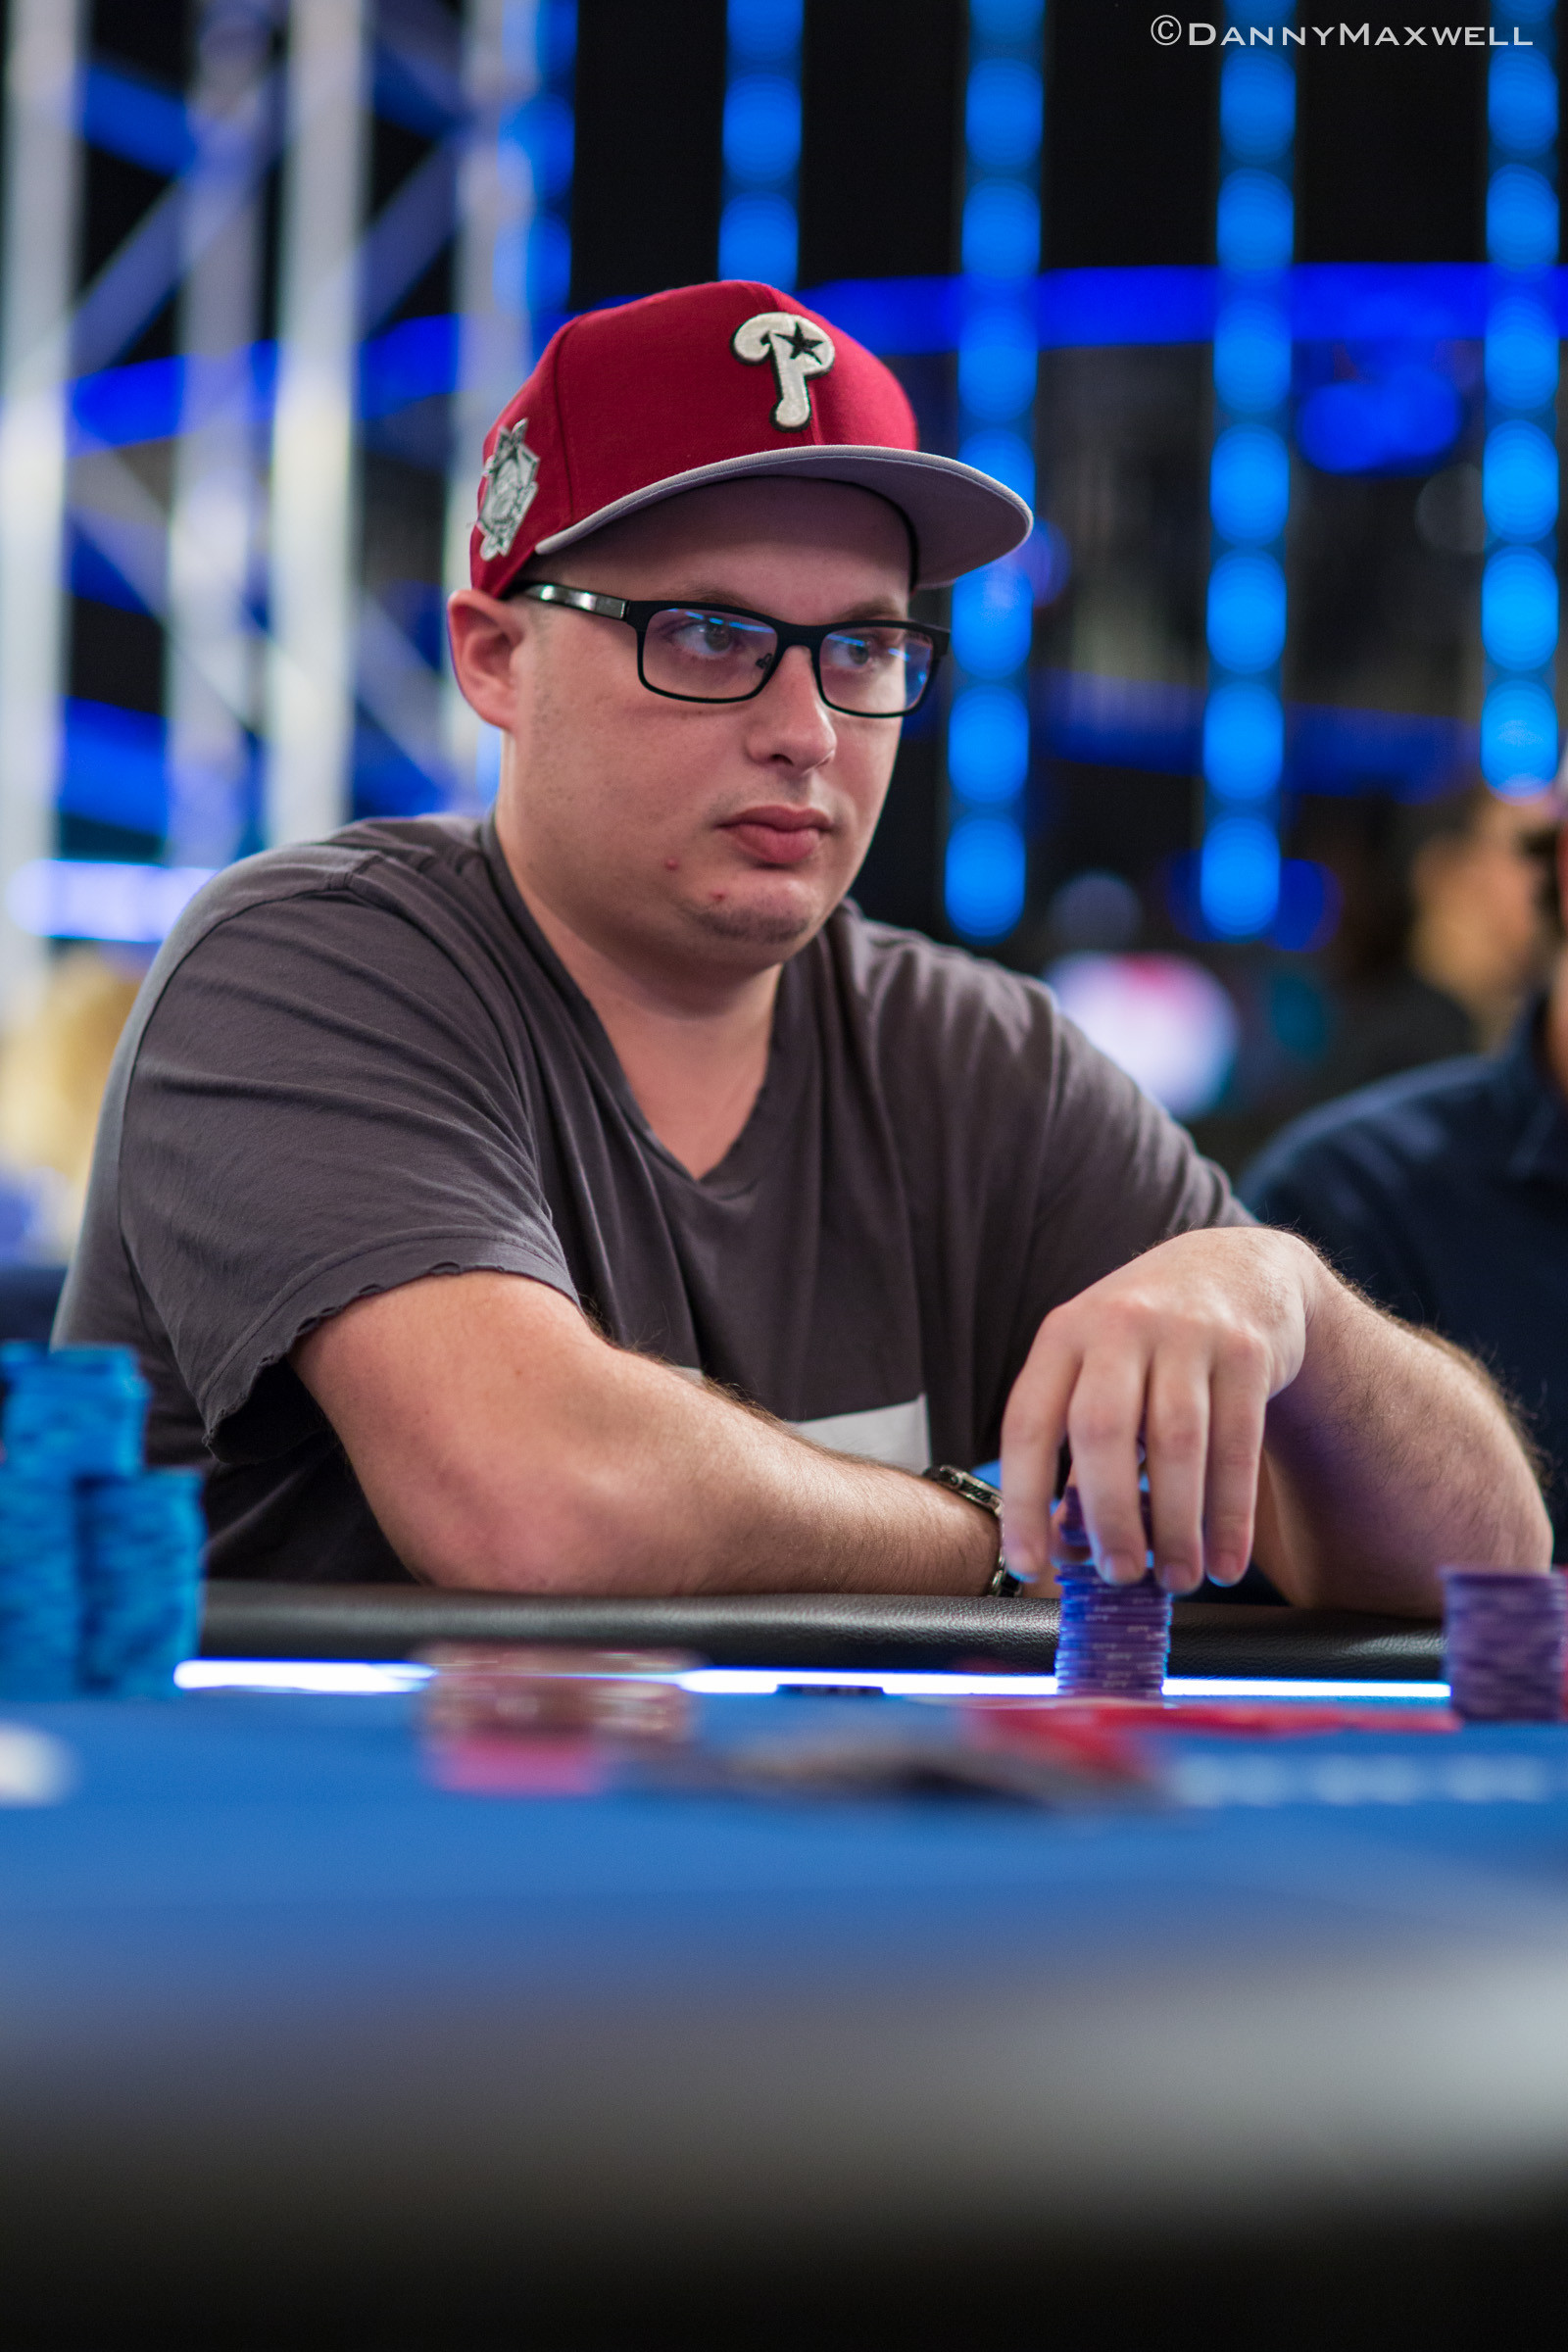 PokerStars.com EPT London Main Event Dzień 3: Kozlov liderem, uczniak w kasie! 101